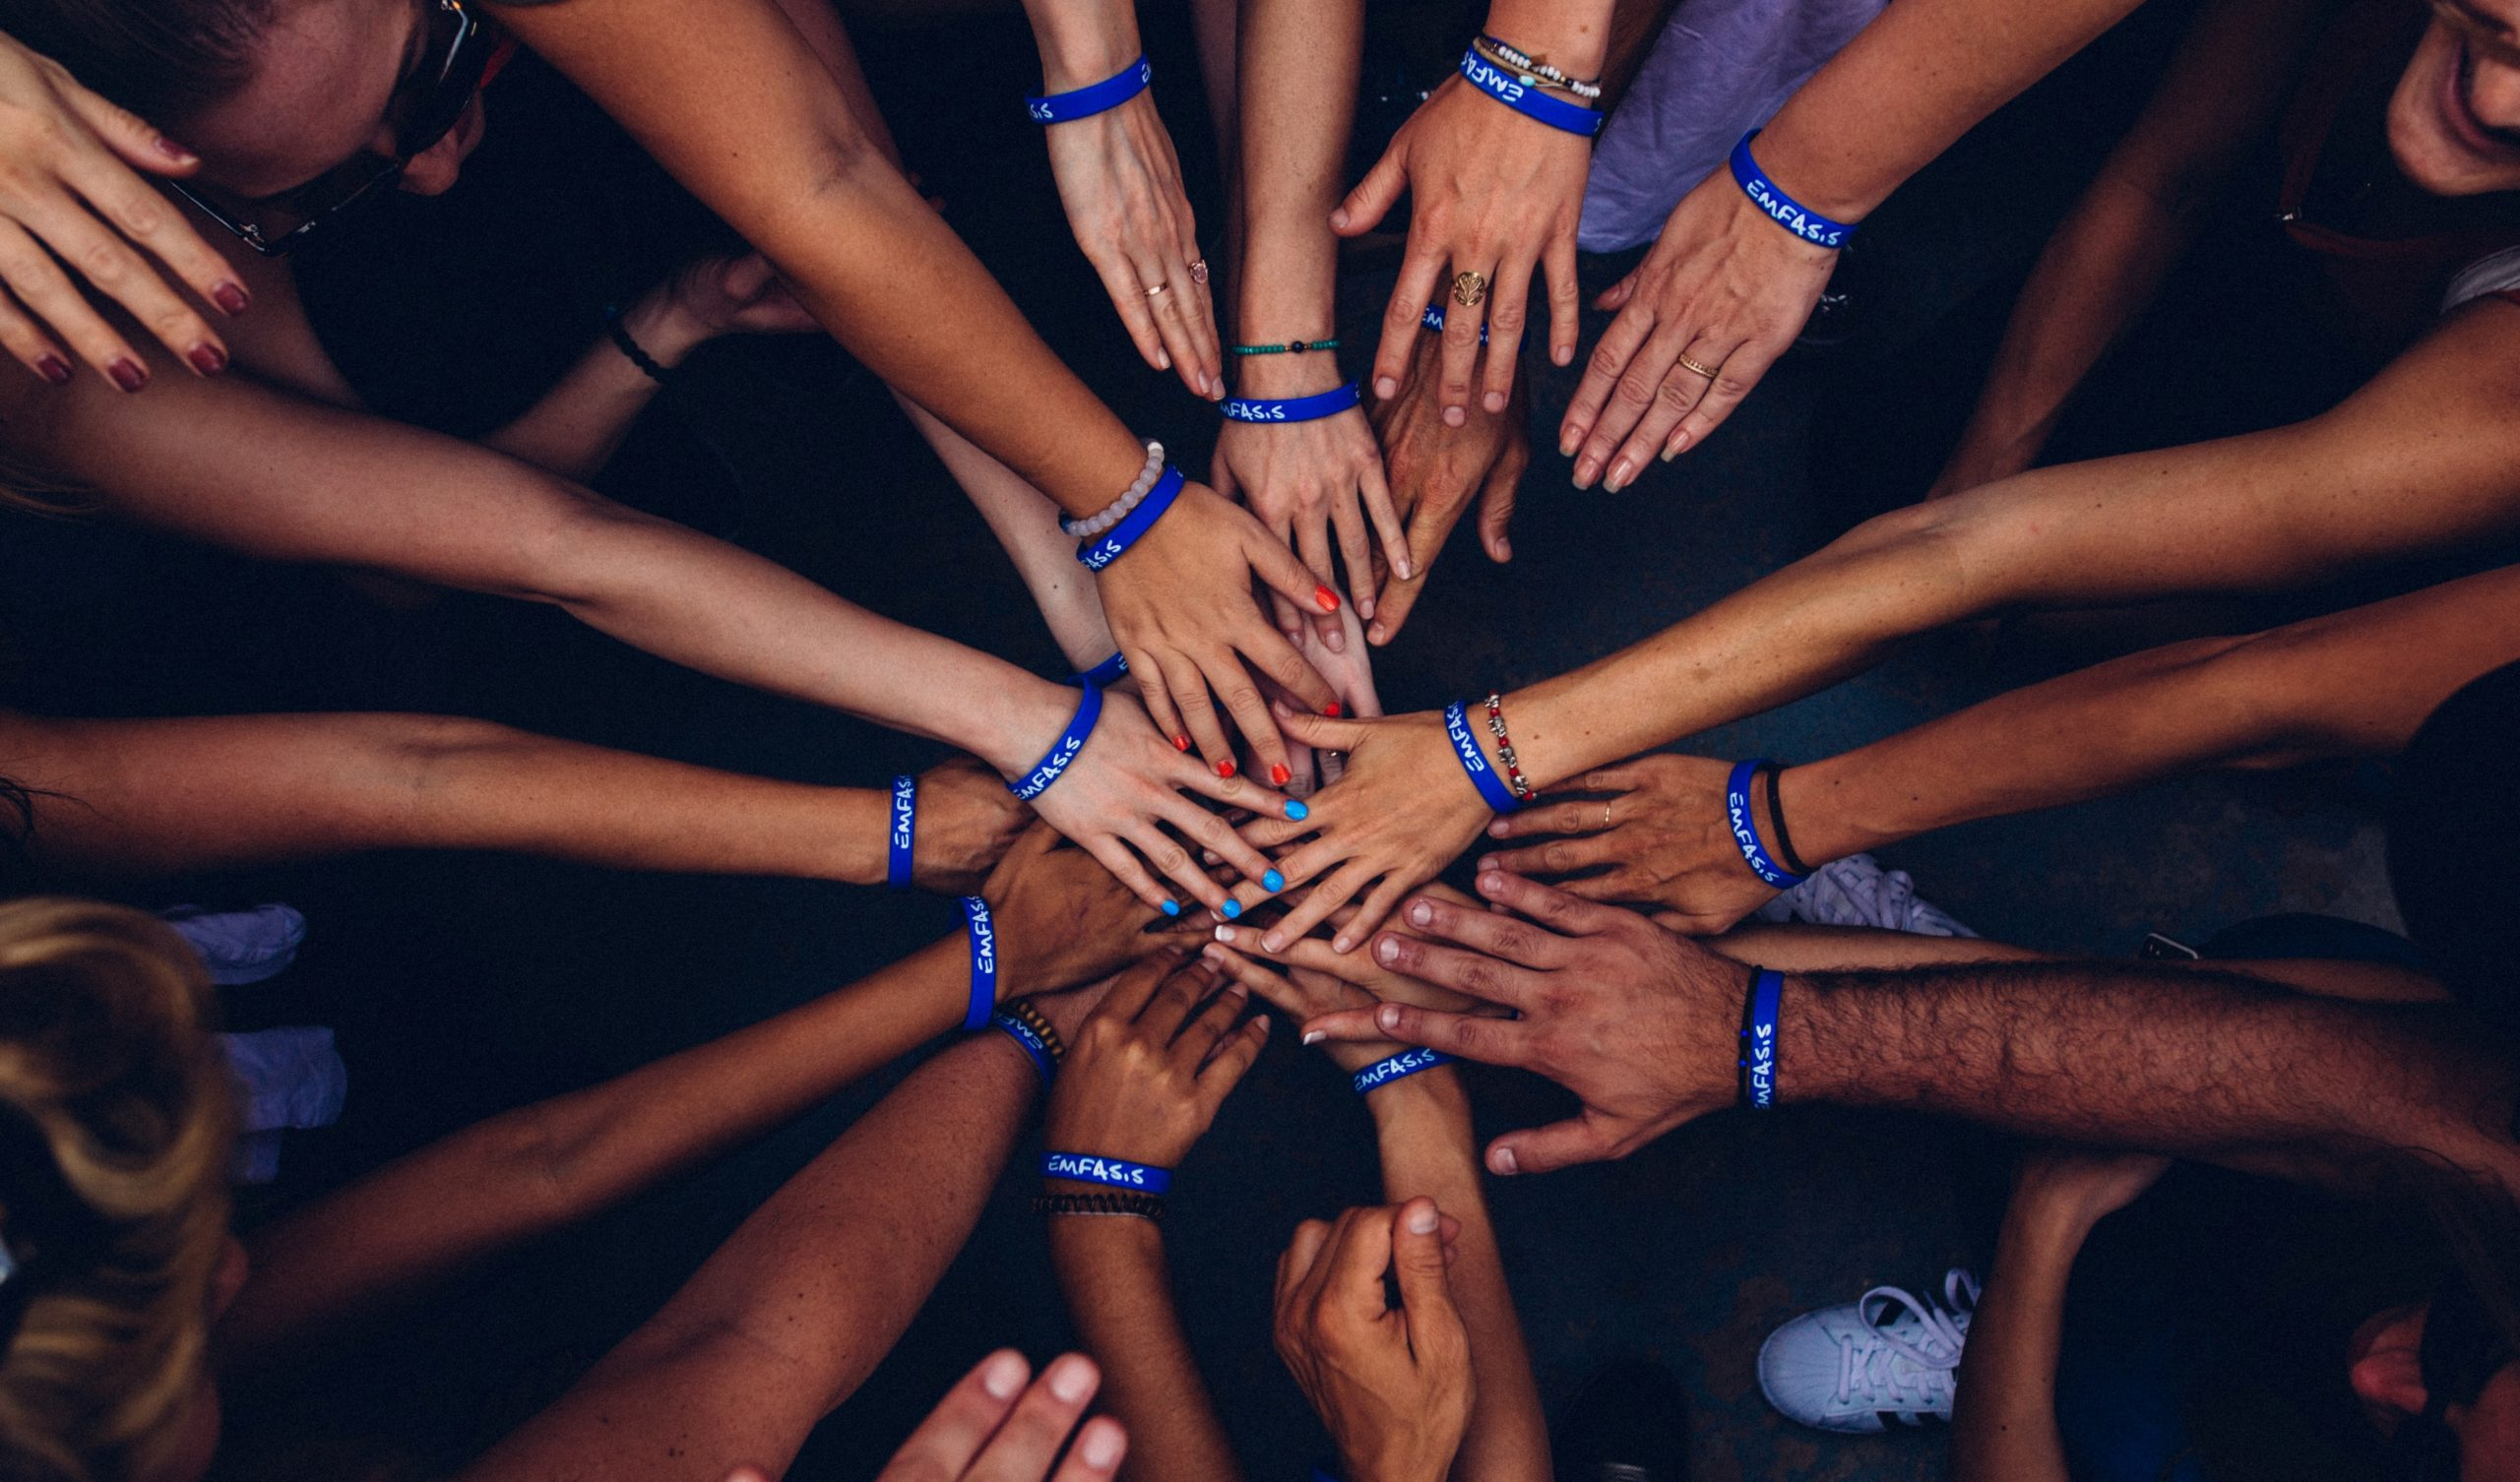 A group of people joining hands in the middle of a group